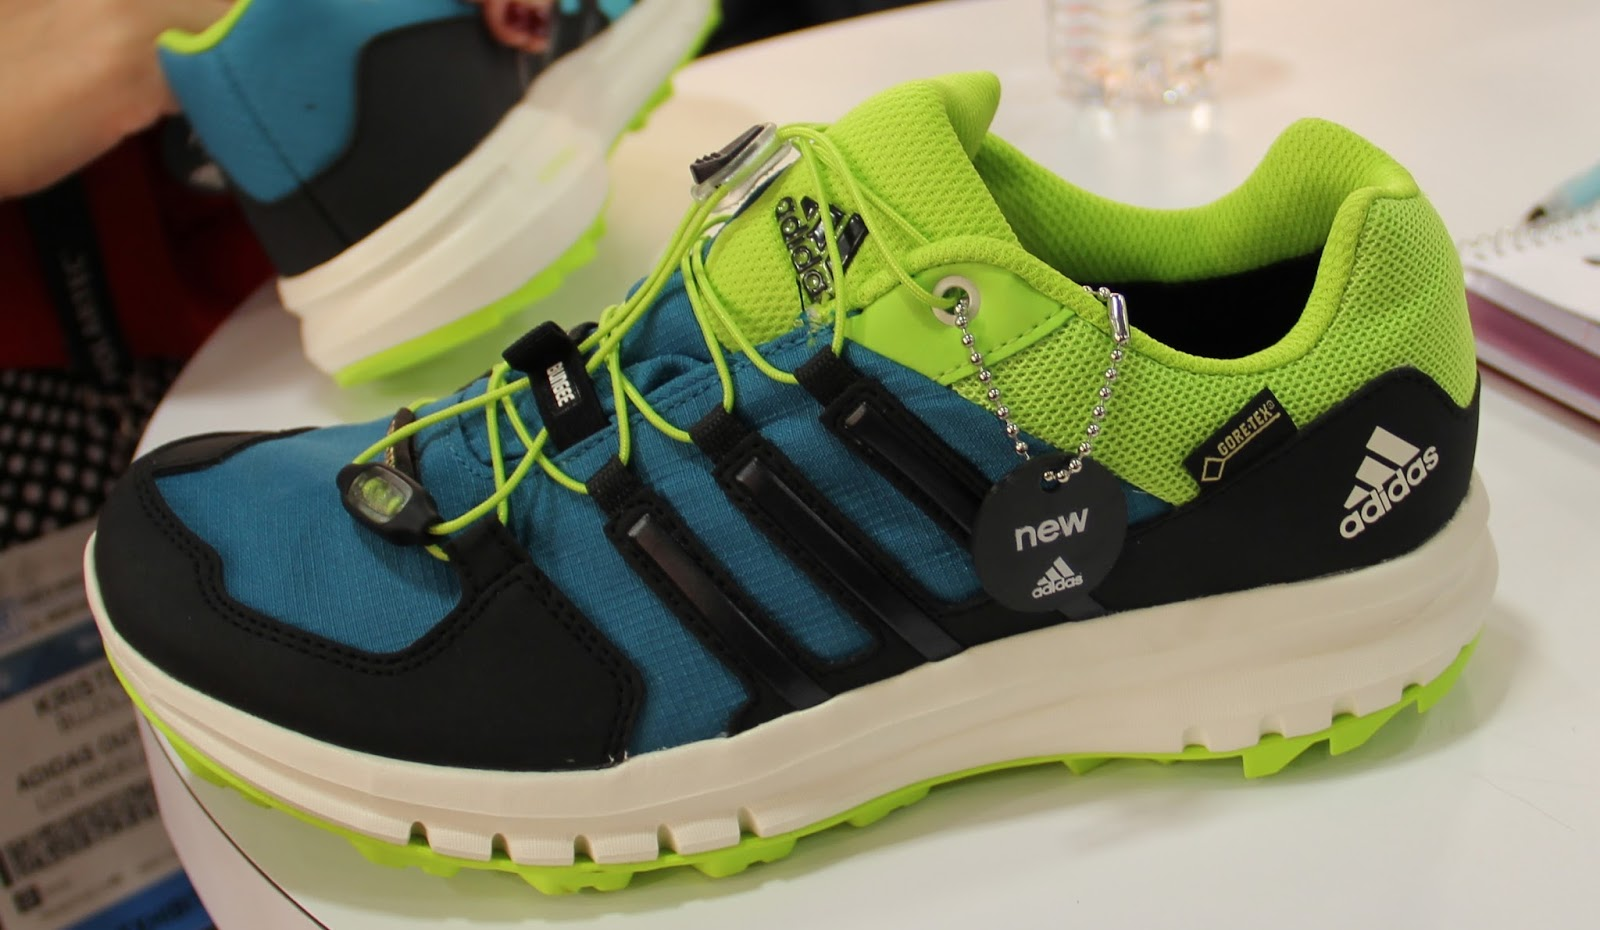 ADIDAS FOOTWEAR OUTDOORS Fall 2014